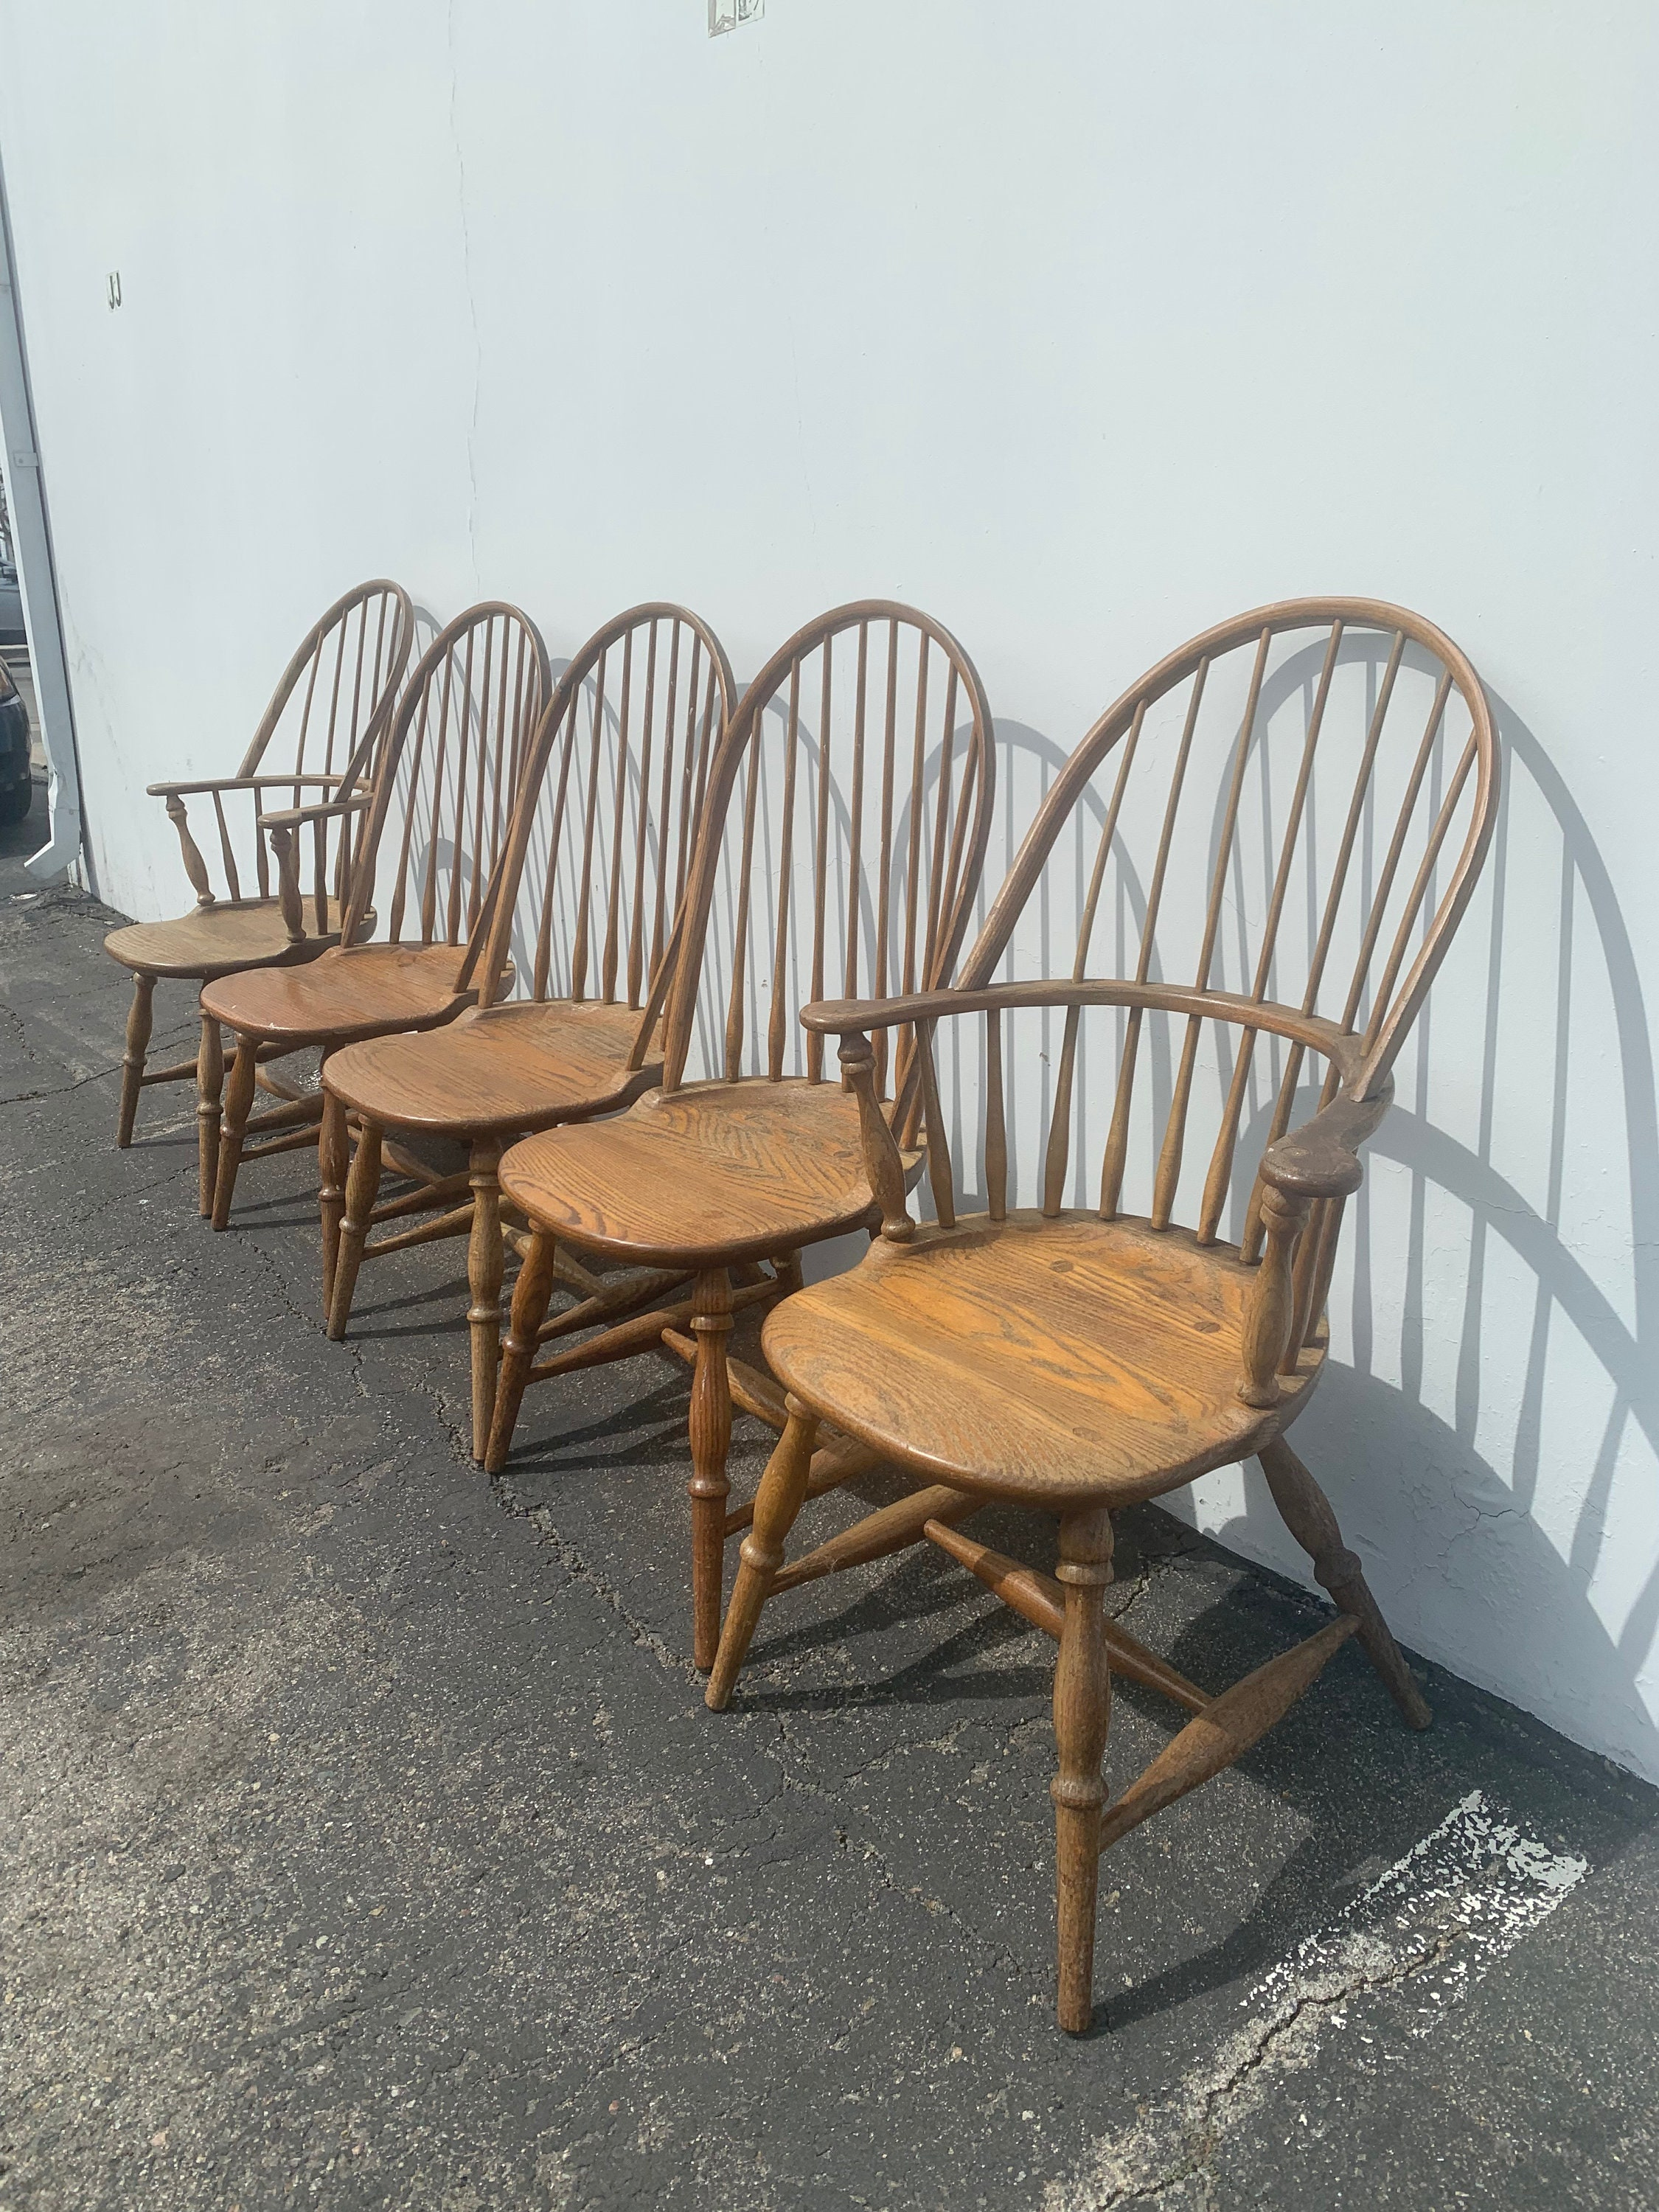 Chair Spindle Oak Chair Wood